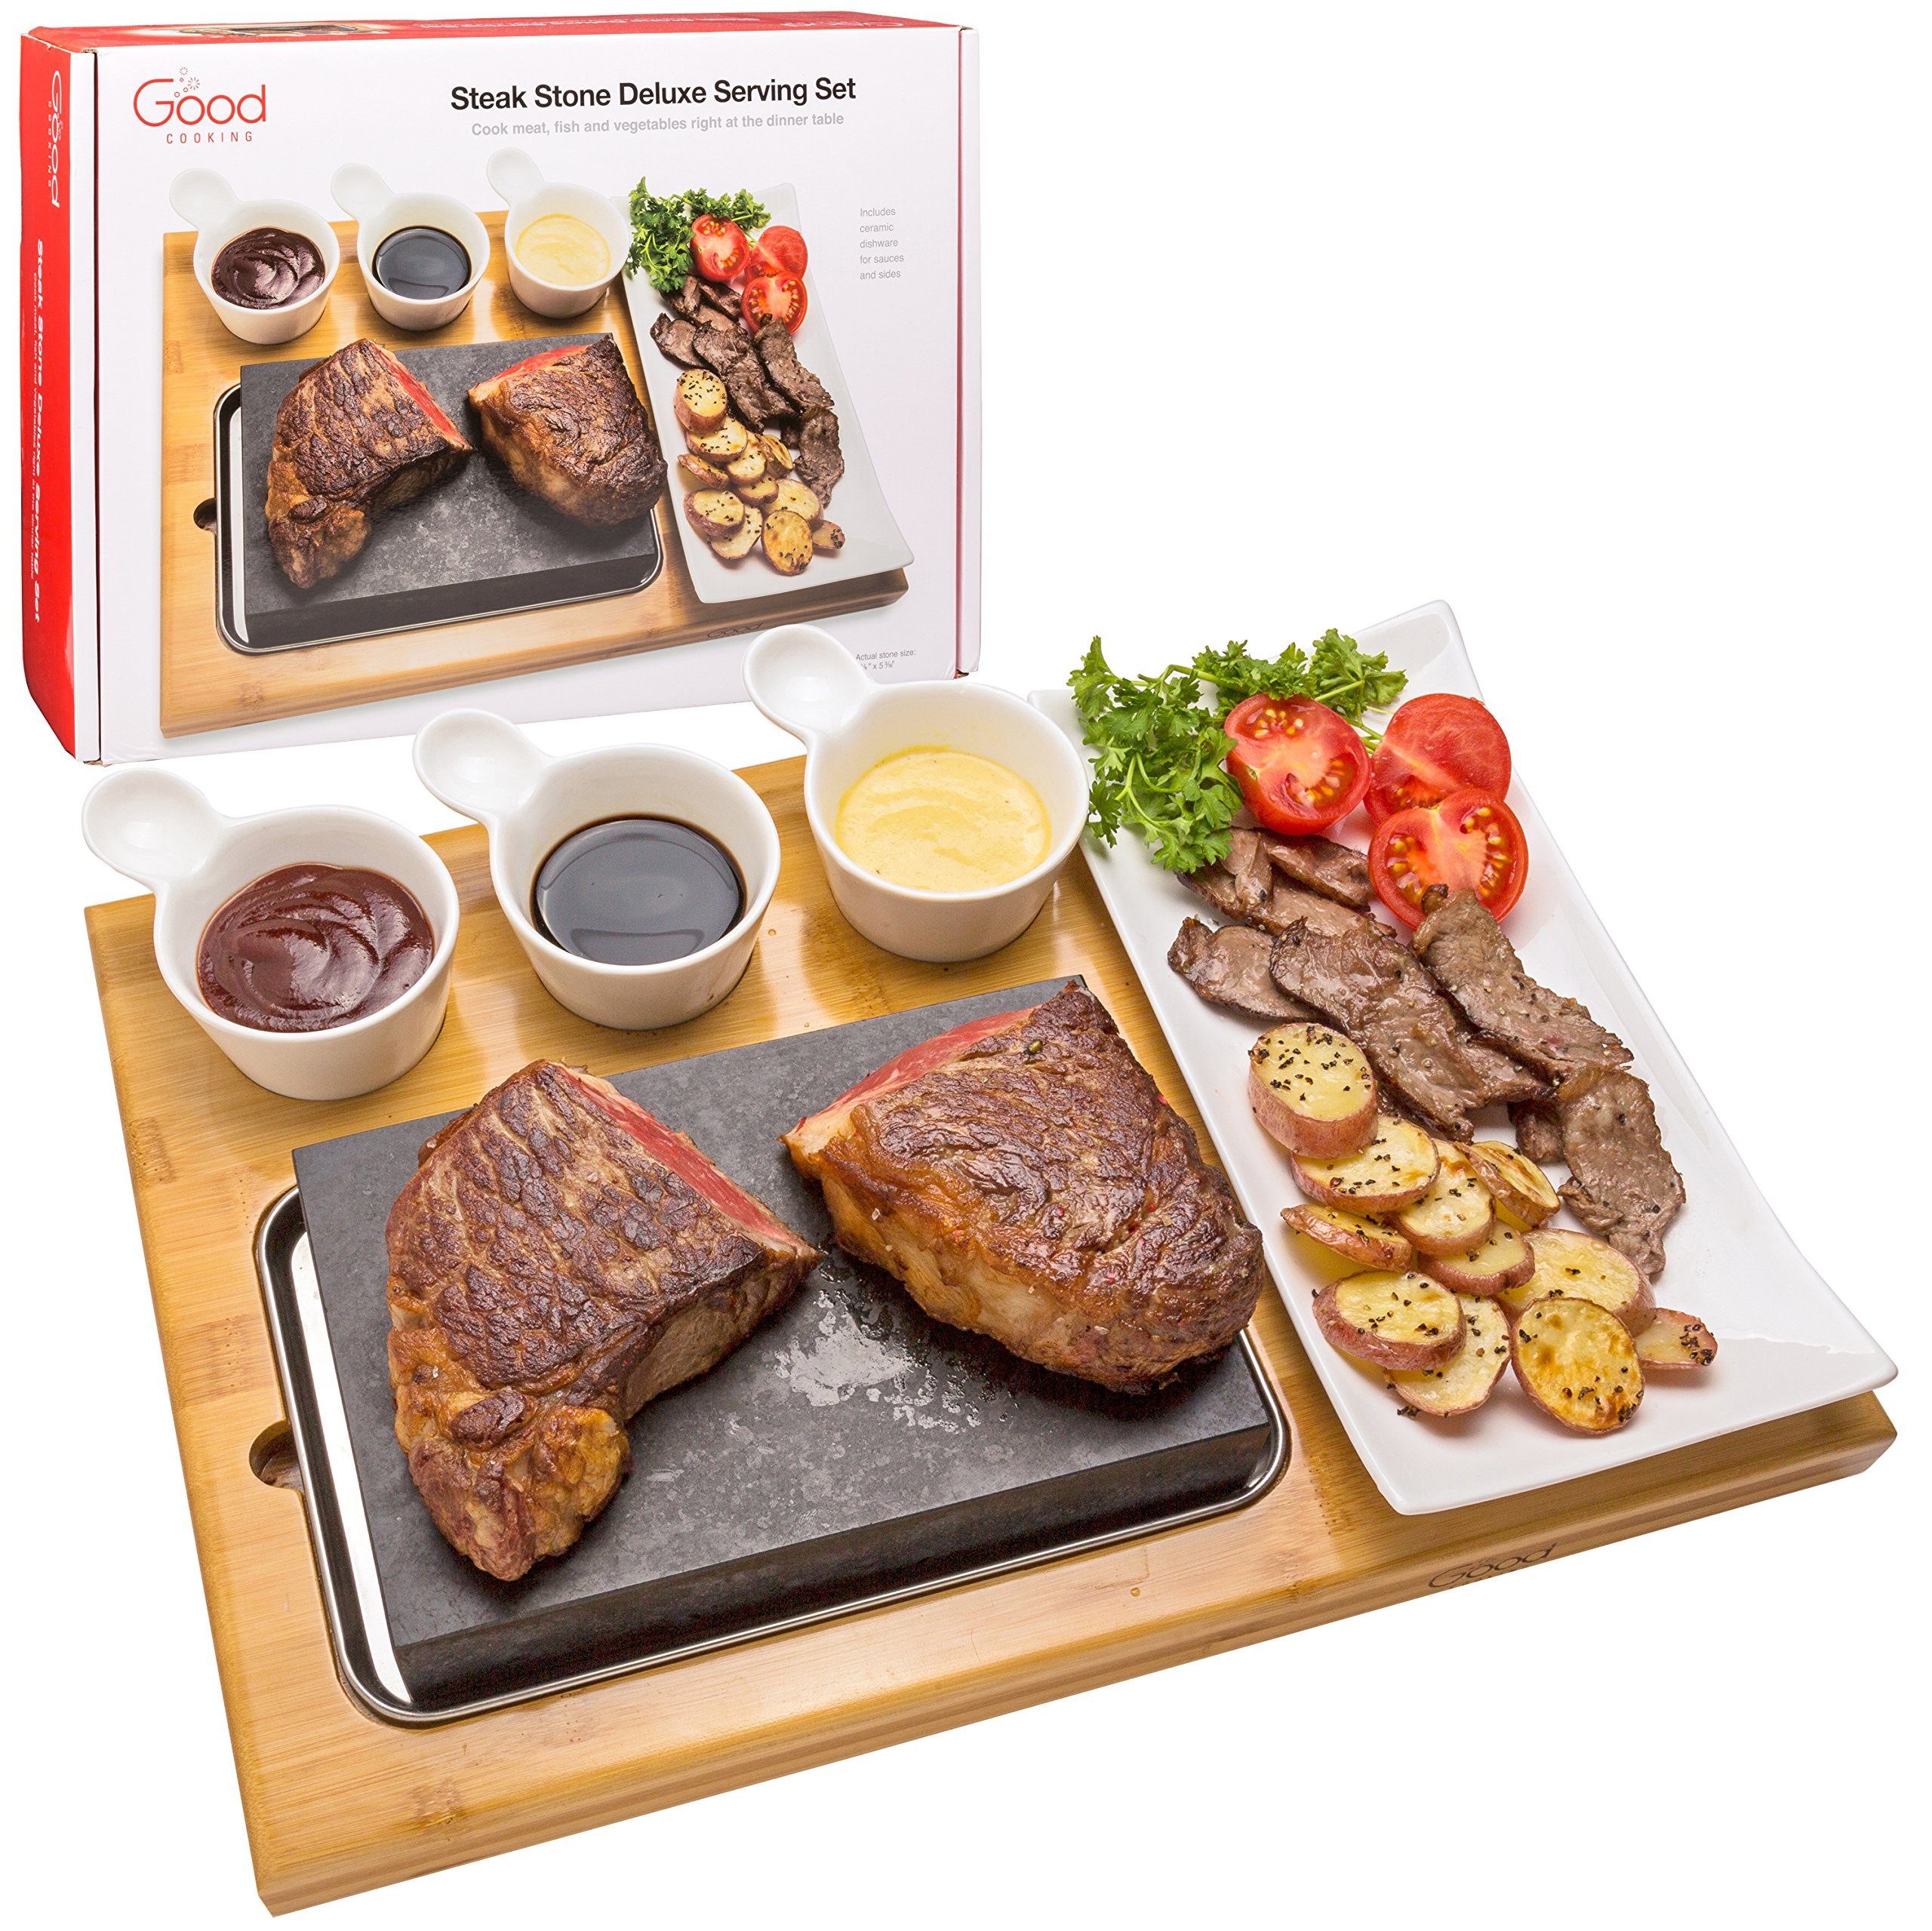 Cooking Stone- Complete Set Lava Hot Steak Stone Plate Tabletop Grill and Cold Lava Rock Hibachi Grilling Stone (8 1/8'' x 5 3/16'') w Ceramic Side Dishes and Bamboo Platter